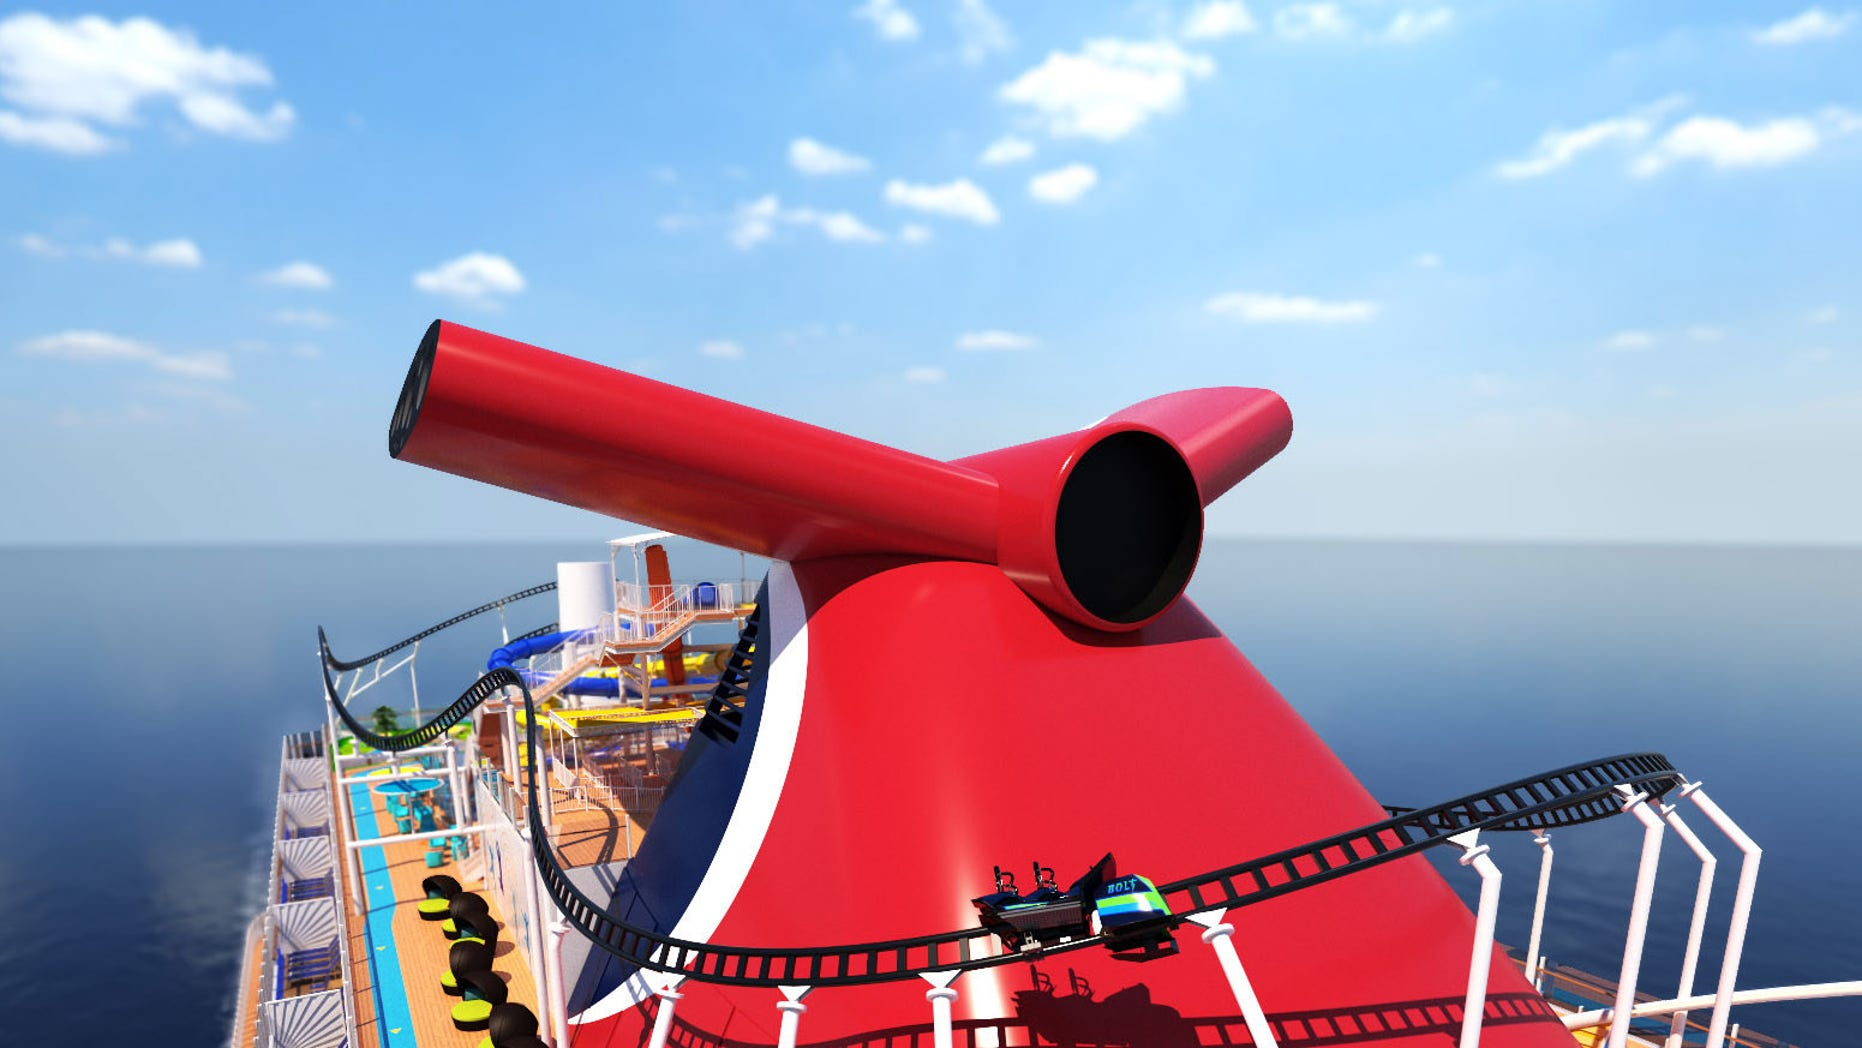 Carnival Cruise Line unveils roller coaster on board new ship